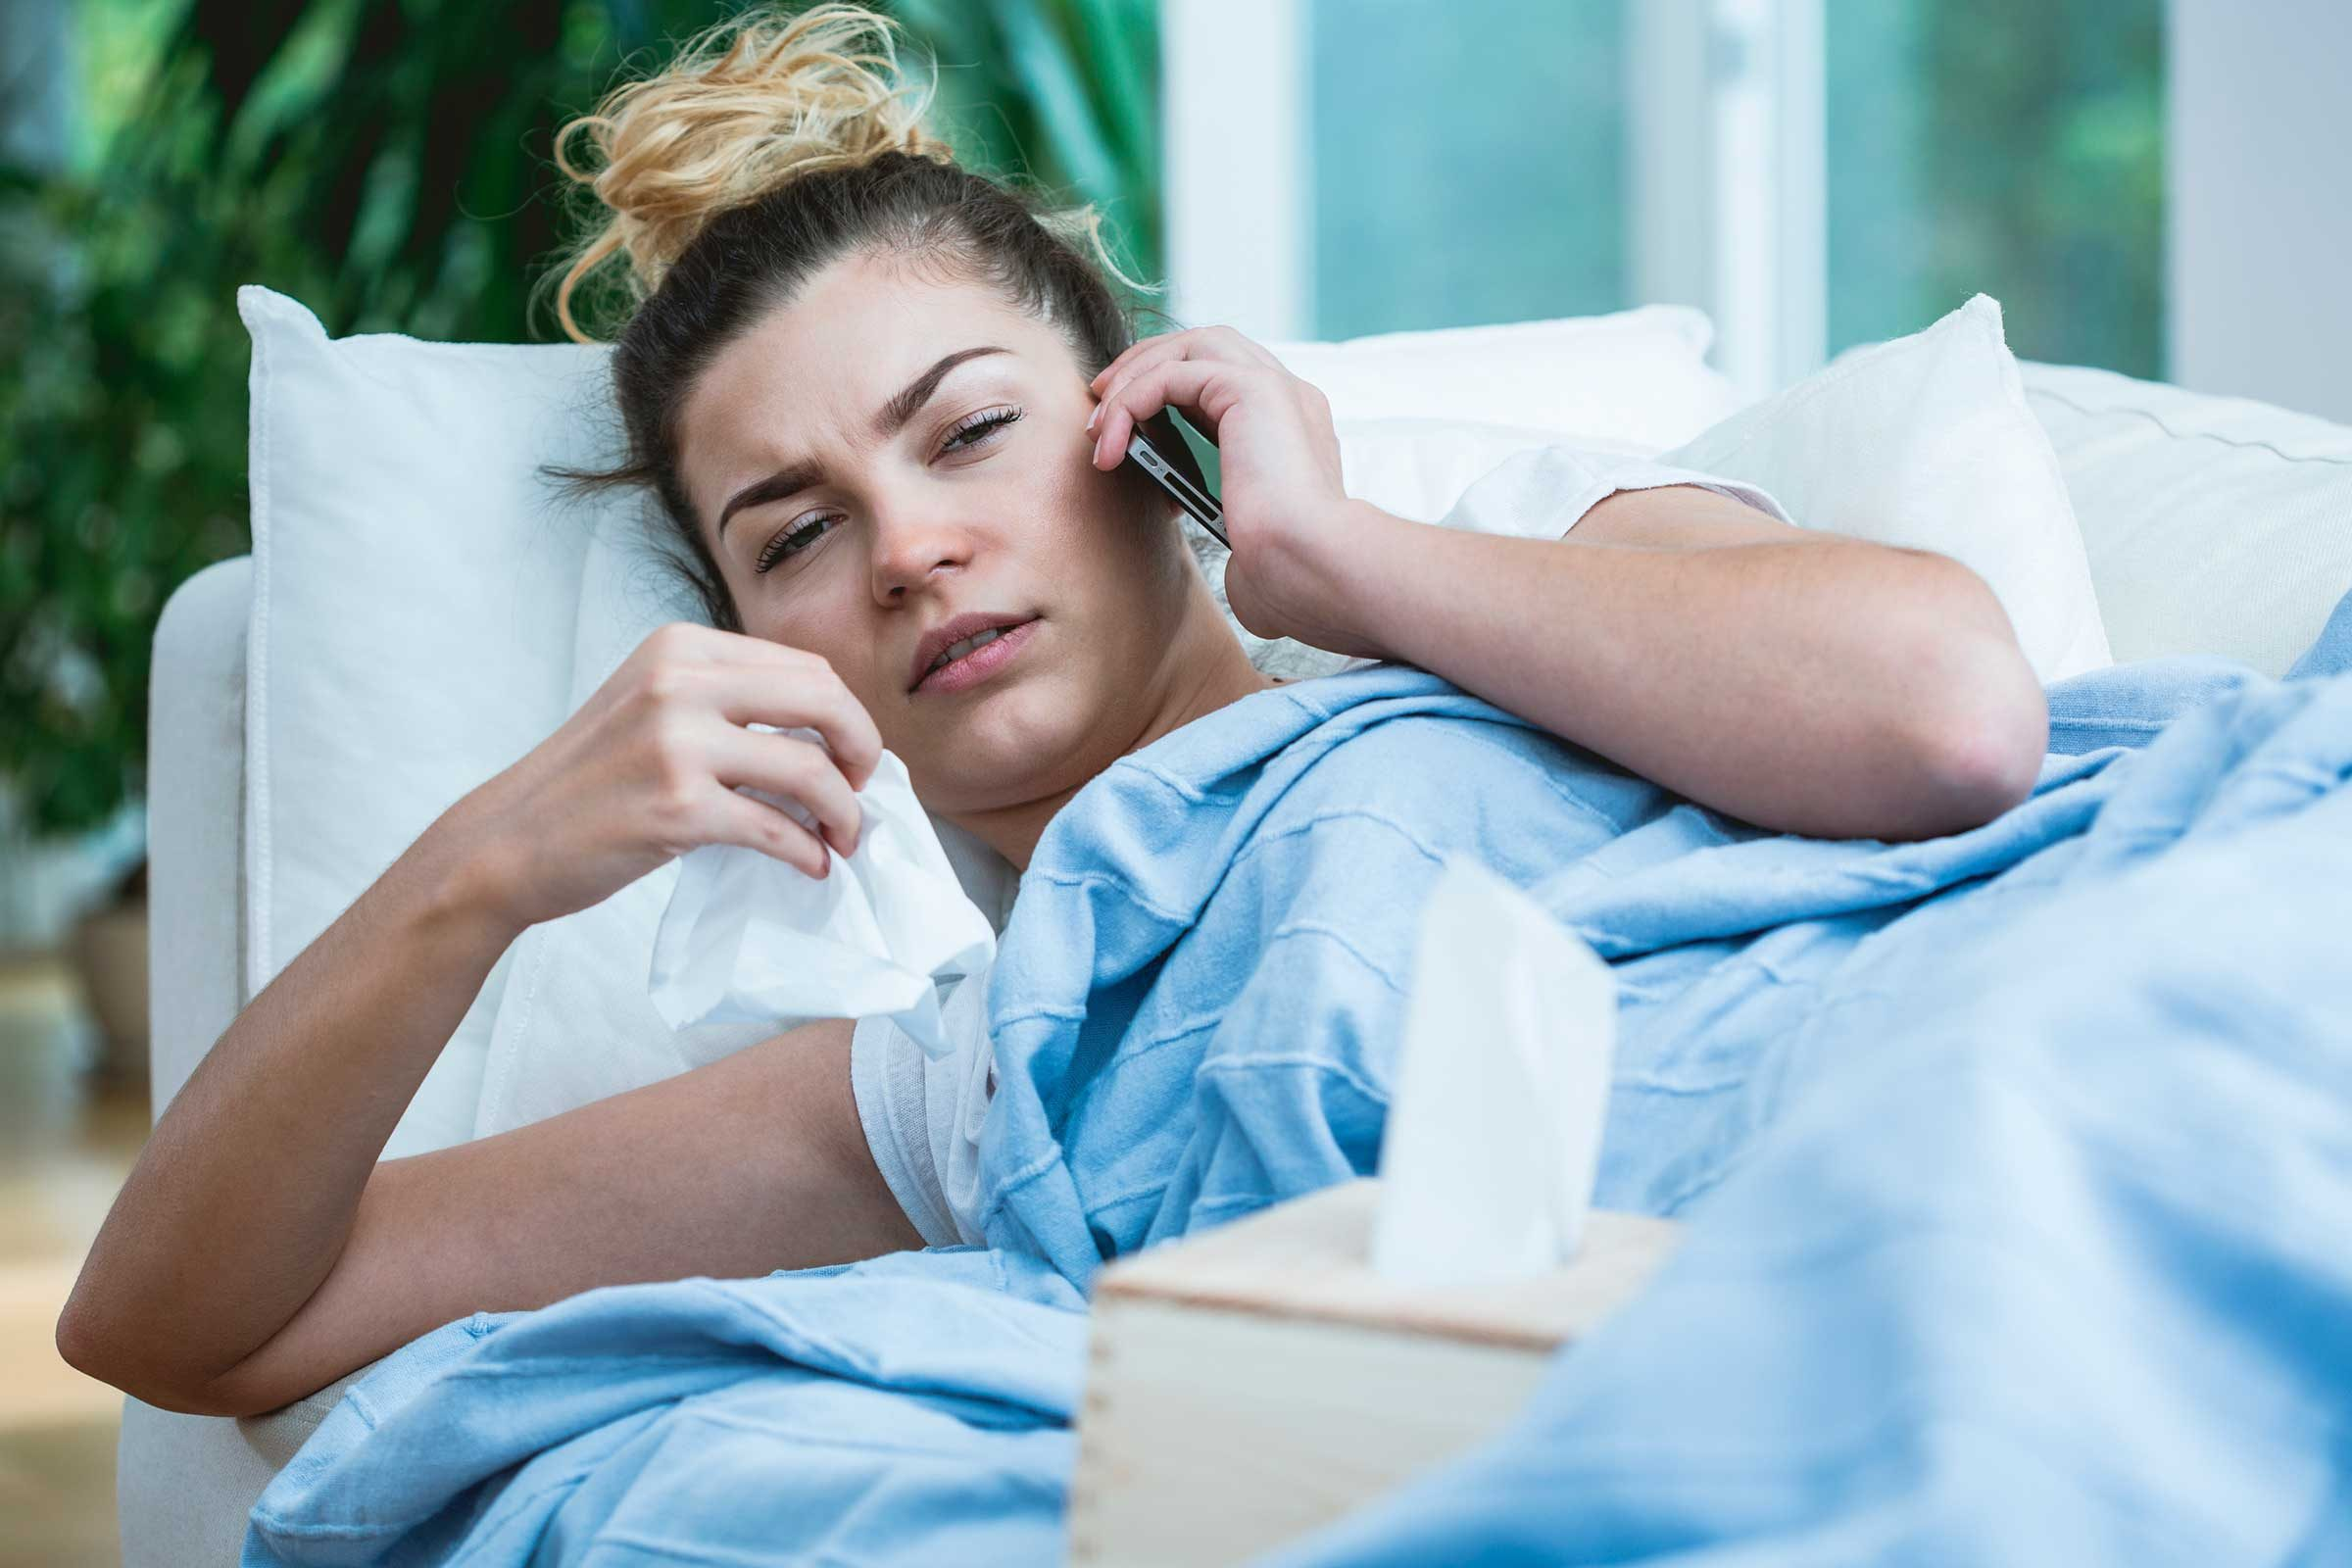 Sick woman in bed, talking on her phone and holding a tissue.